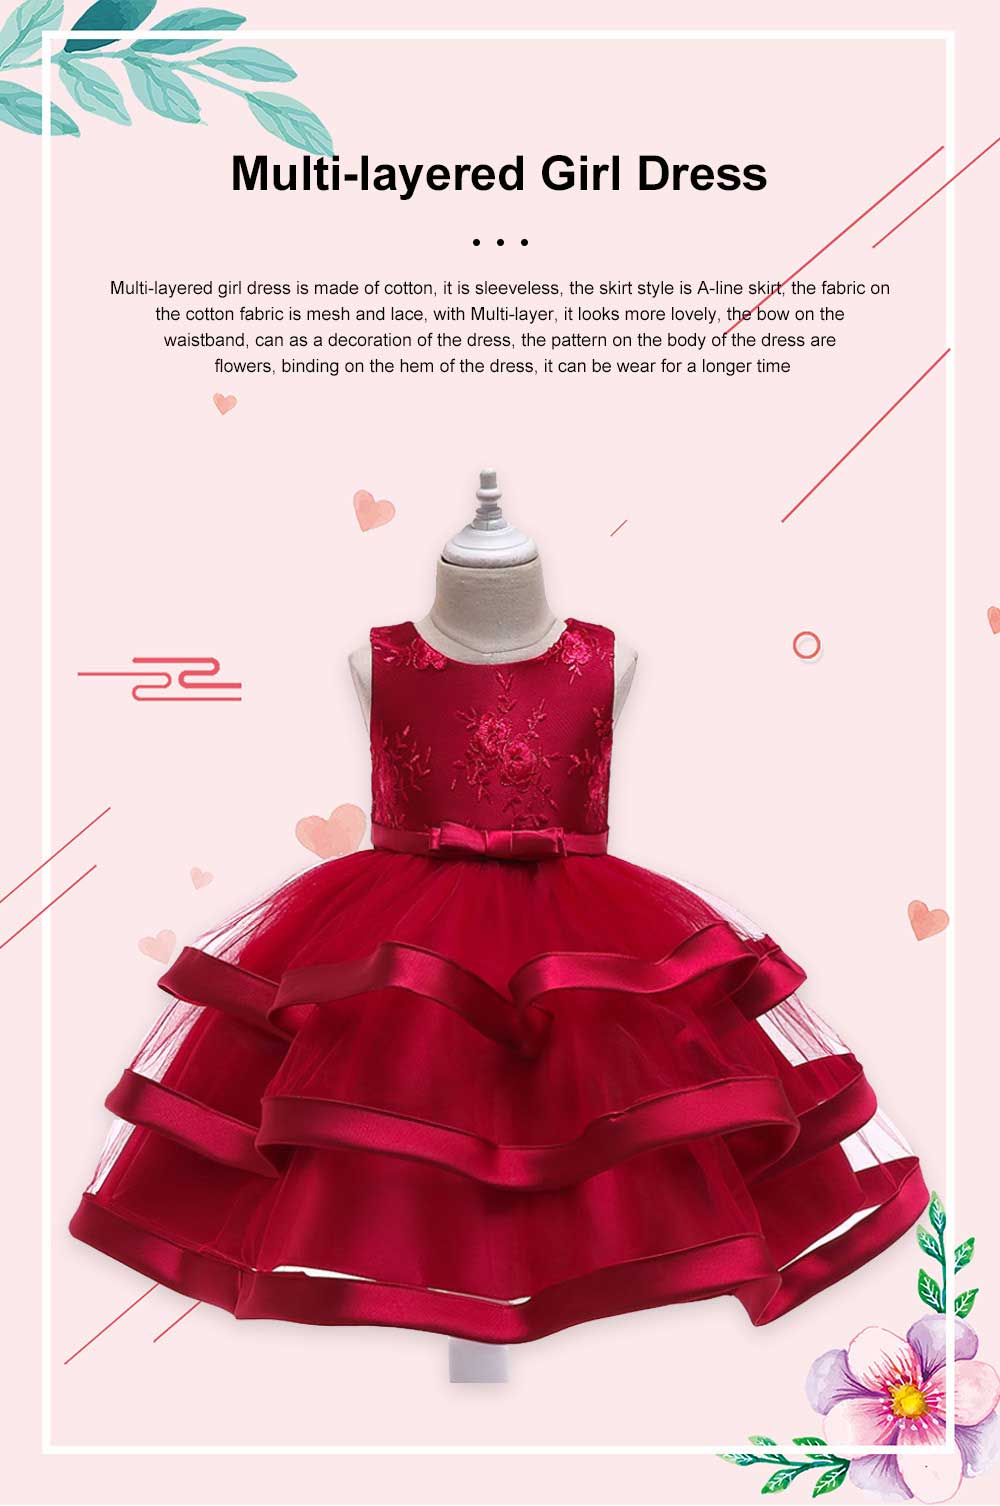 Female Flower Skirts Kids Girls Flower Wedding Dress, Multi-layer Mesh Gauze skirt, Multi-layered Show Dress Party Suit 0